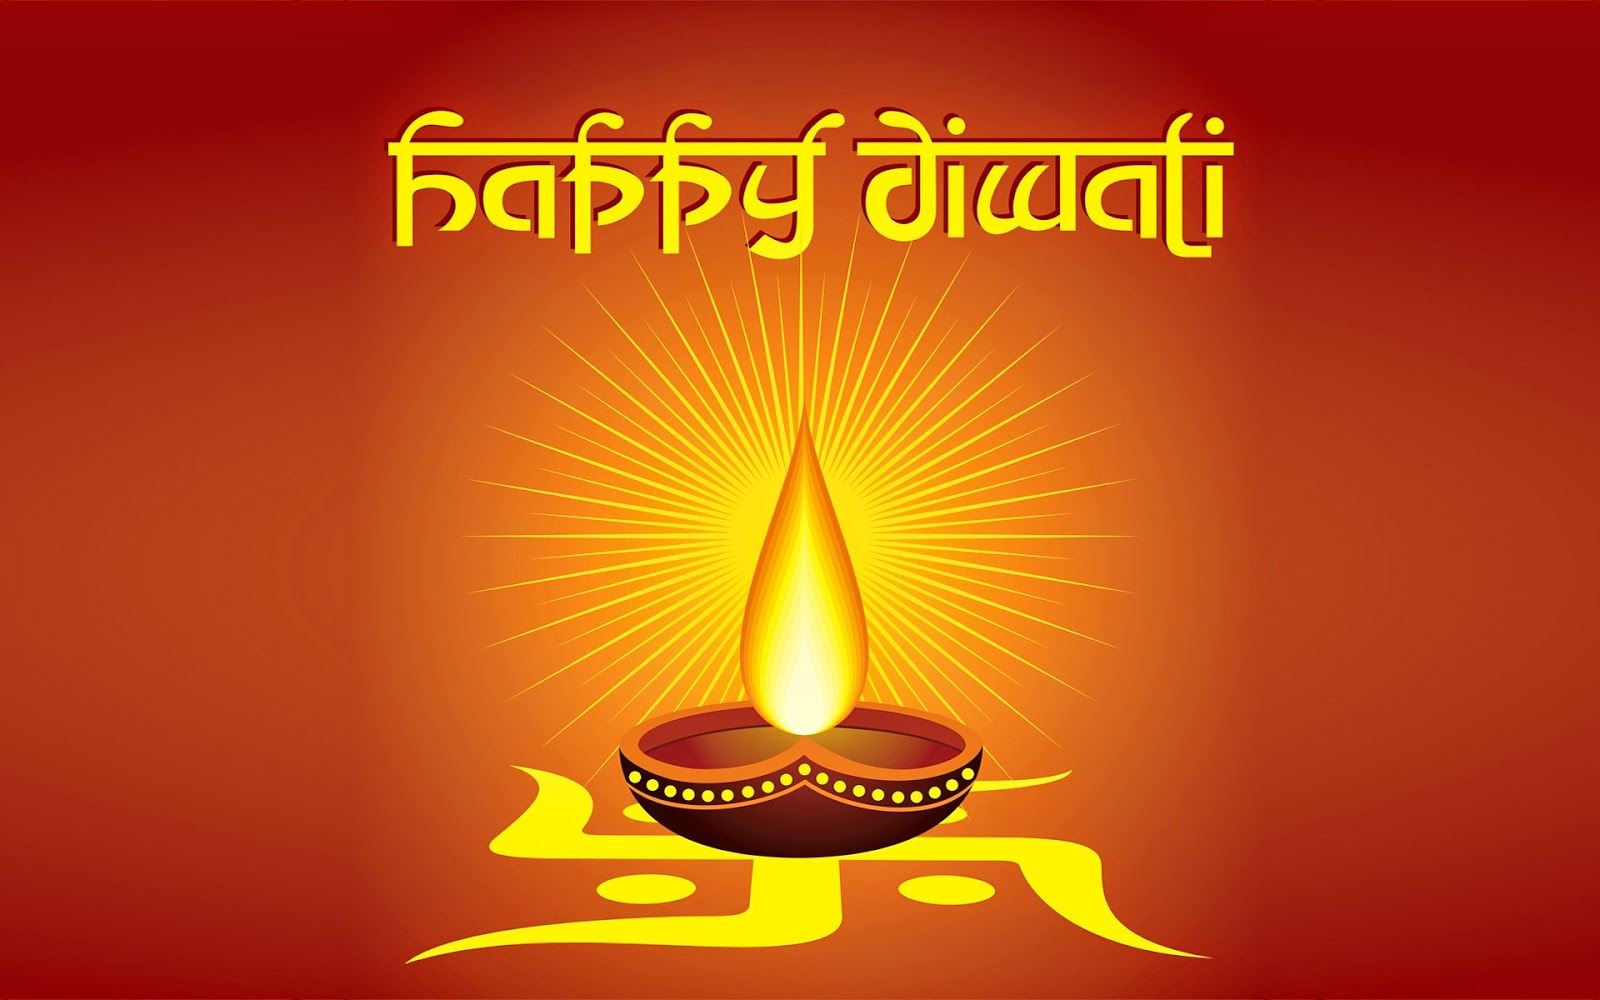 Happy Diwali 2014 Greeting and Wishes HD Wallpapers Free Download ... for Diwali Lamp Free Download  75sfw